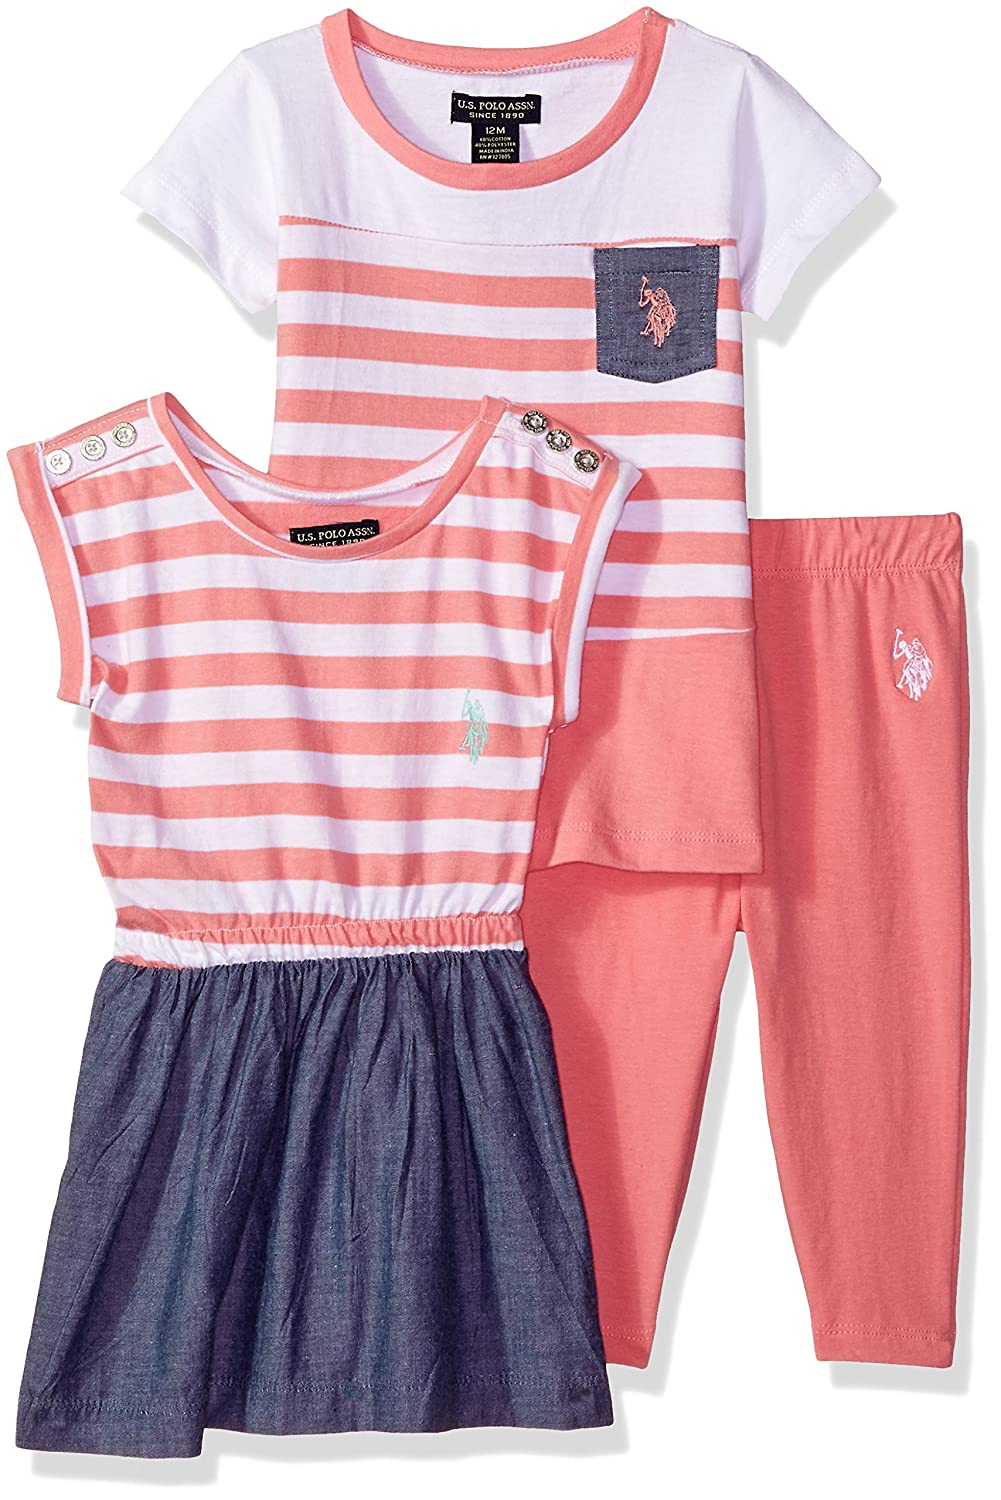 U.S. Polo Assn. Baby Girls Knit, Fashion Top and Pant Set